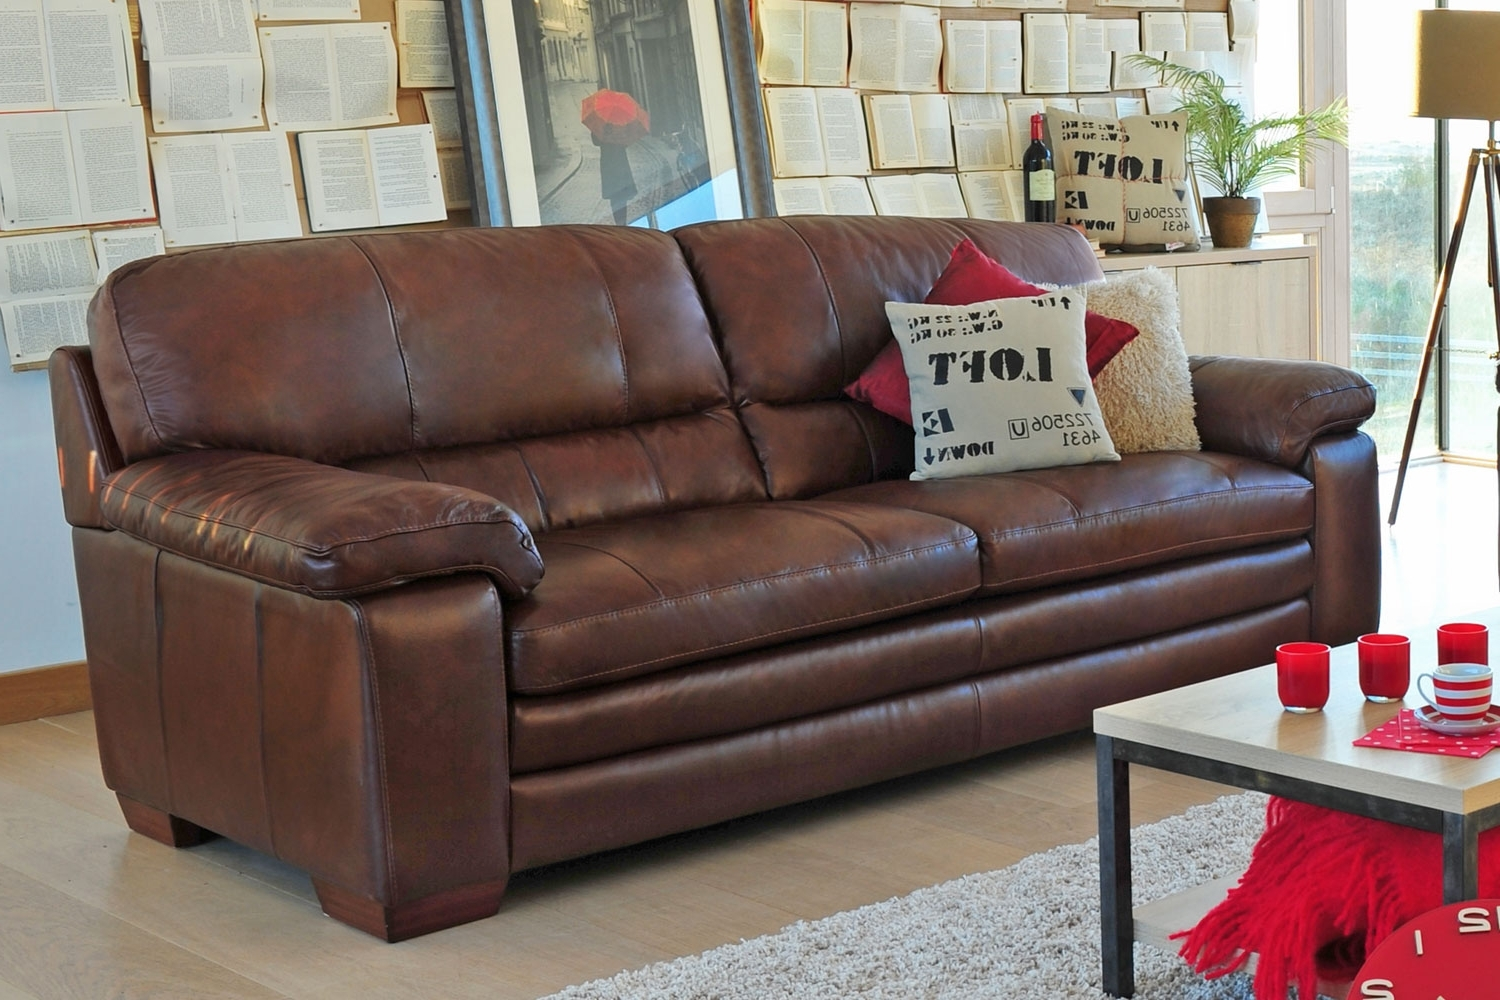 3 Seater Leather Sofas With Popular Lumina 3 Seater Leather Sofa From Harvey Norman Ireland (View 3 of 20)